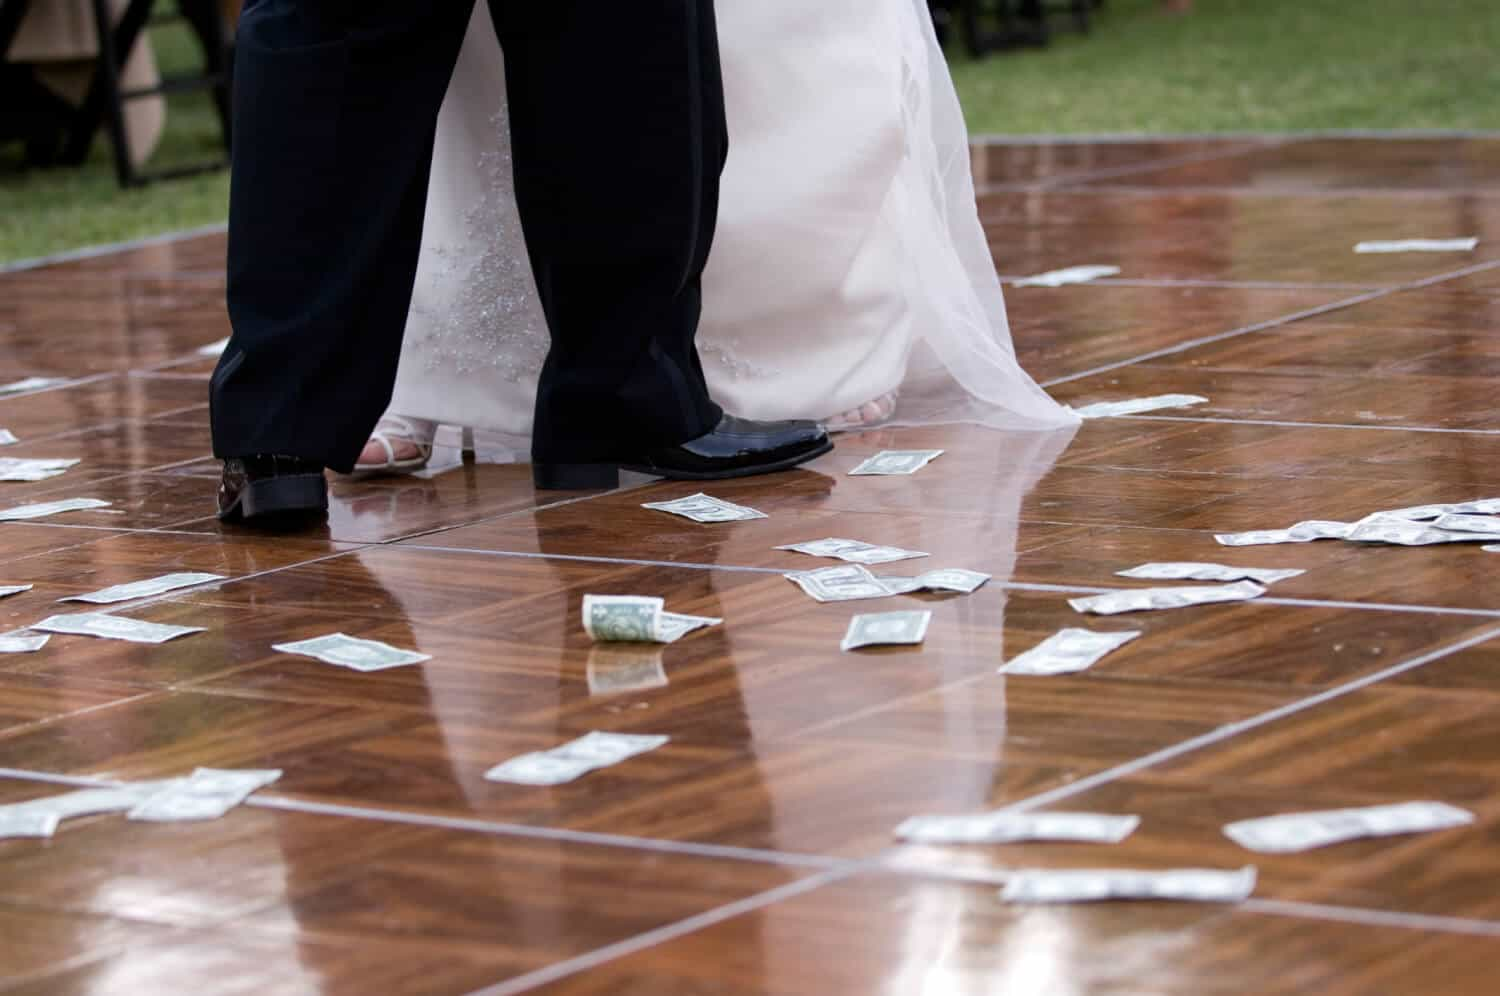 A dancing newlywed couple shows the secret to a happy marriage is keeping money separate